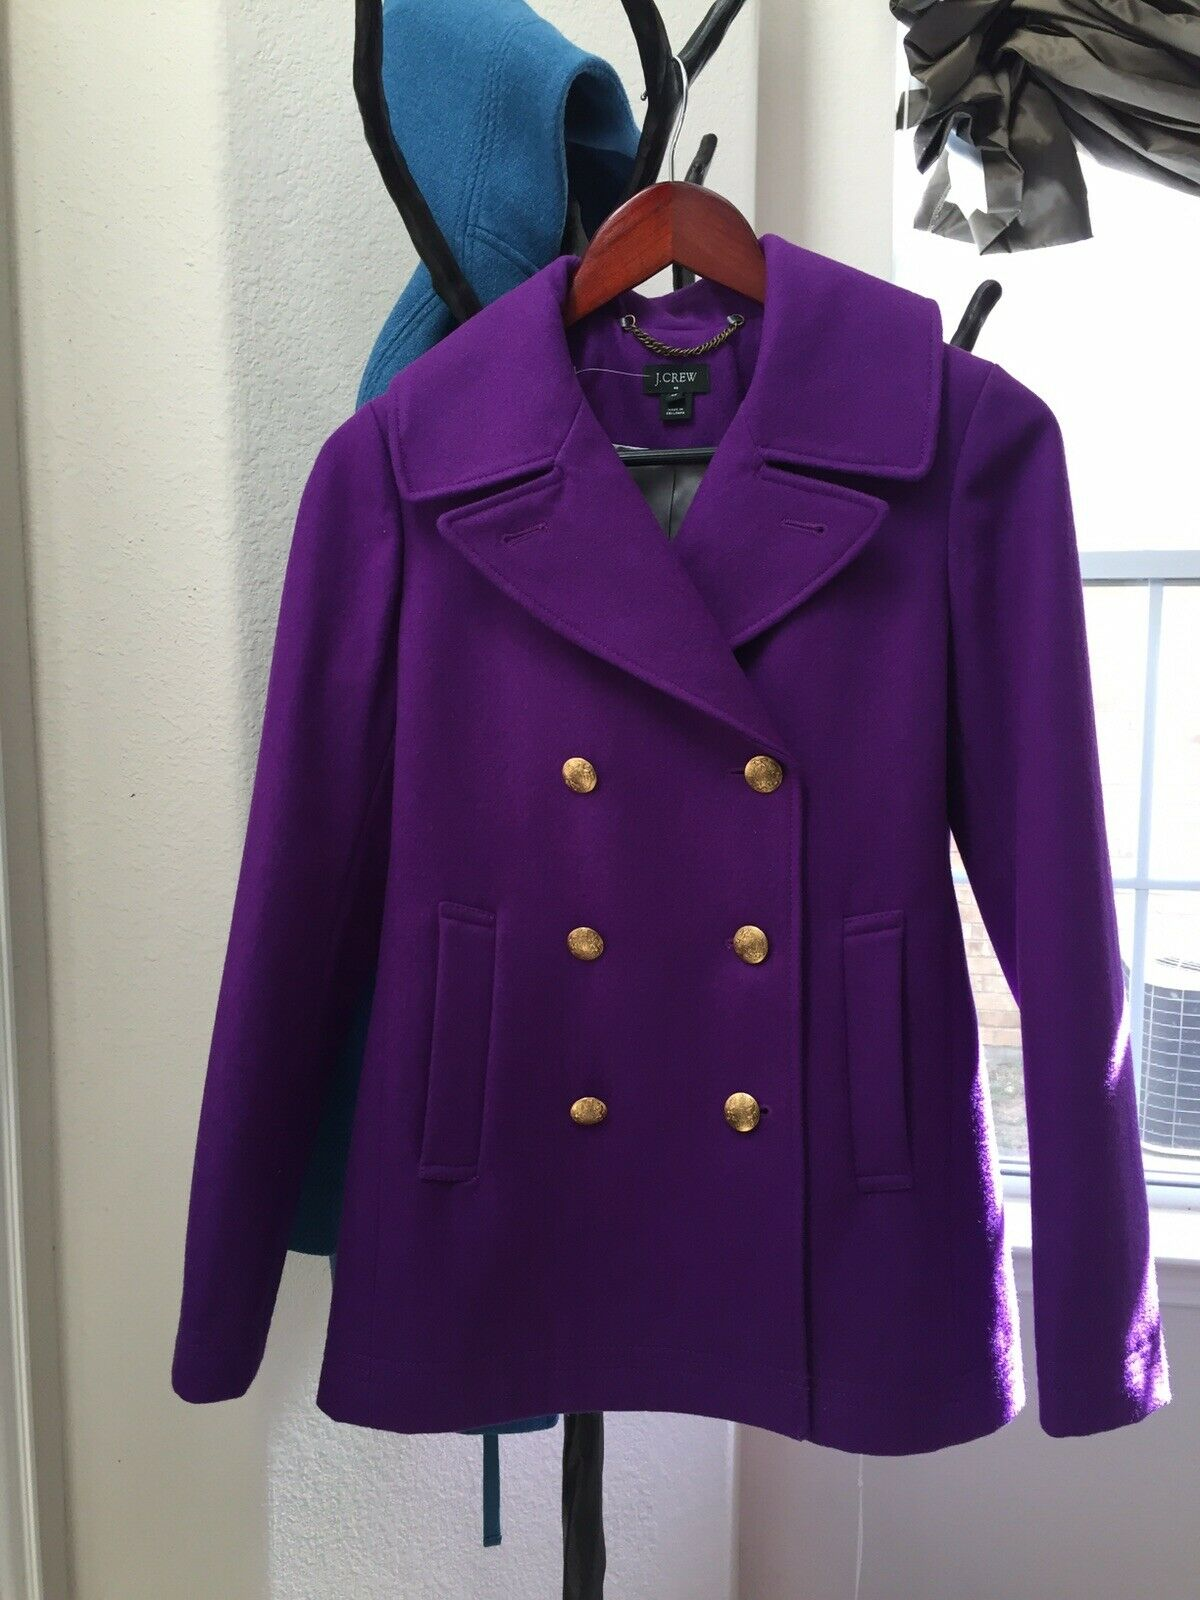 J CREW Double breasted Wool Blend Peacoat In vibrant Purple